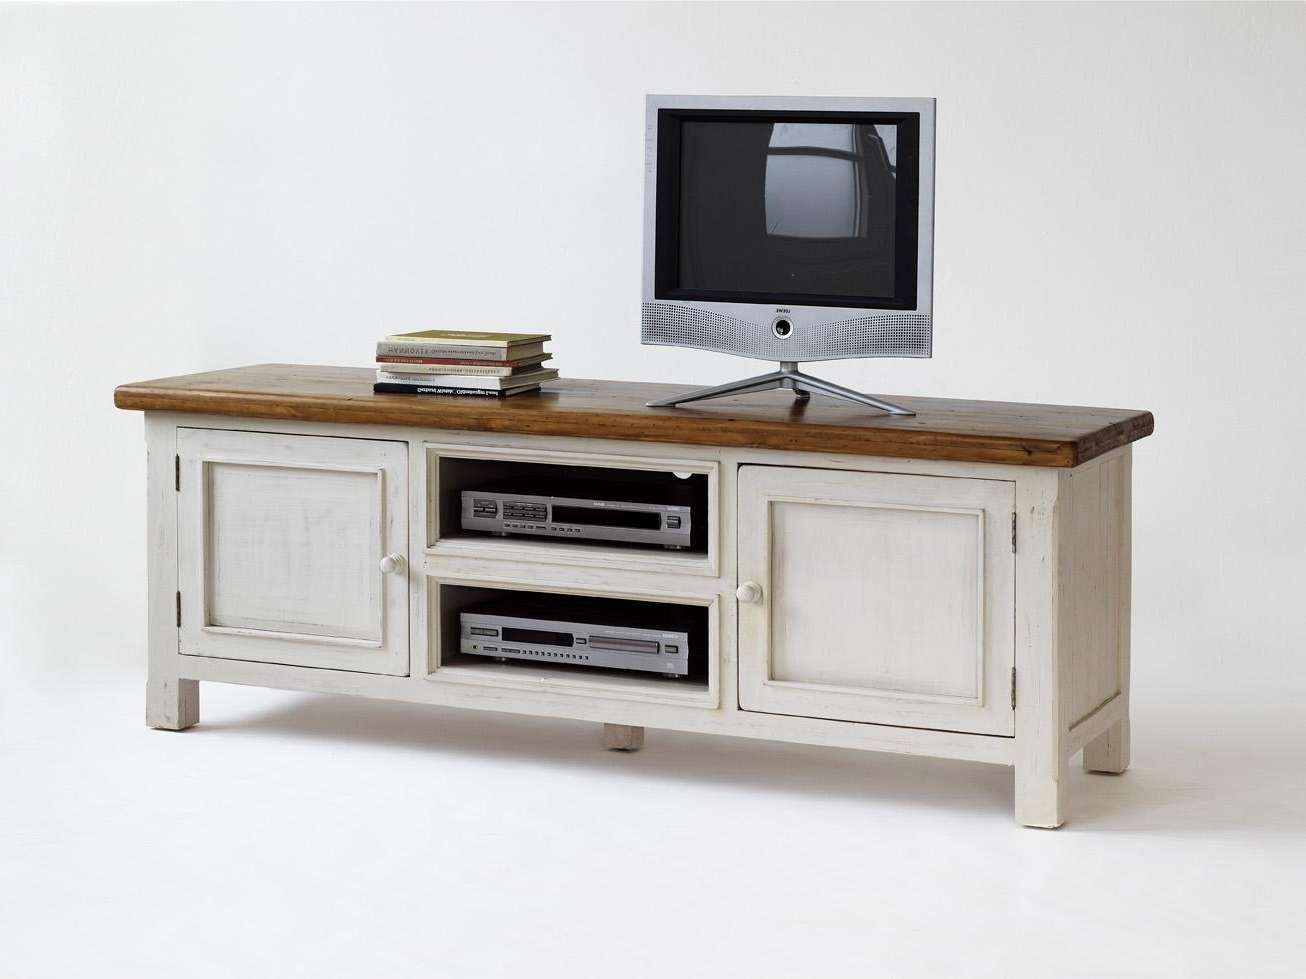 Incredible Decoration White Wood Furniture Nice Design Ideas Within White Wood Tv Stands (Gallery 4 of 15)